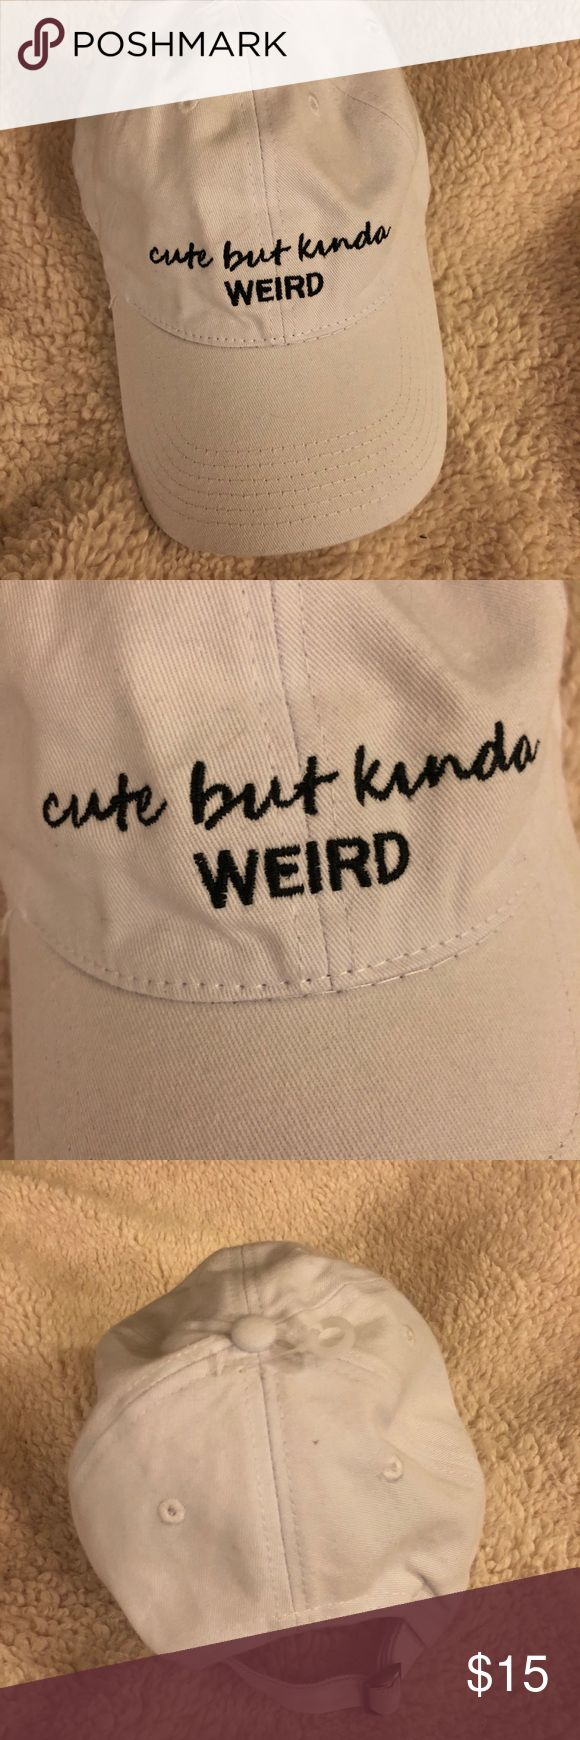 ❣️BRAND NEW CUTE BUT KINDA WEIRD WHITE DAD HAT ♡Cute but kinda weird white dad hat ♡Perfect condition NEW WITH TAGS ♡Super stylish, adjustable back.  ♡Sizing = One size = fits perfectly ❗️Always open to offers, Ask Questions❗️ ‼️Bundle to save‼️ SO Accessories Hats